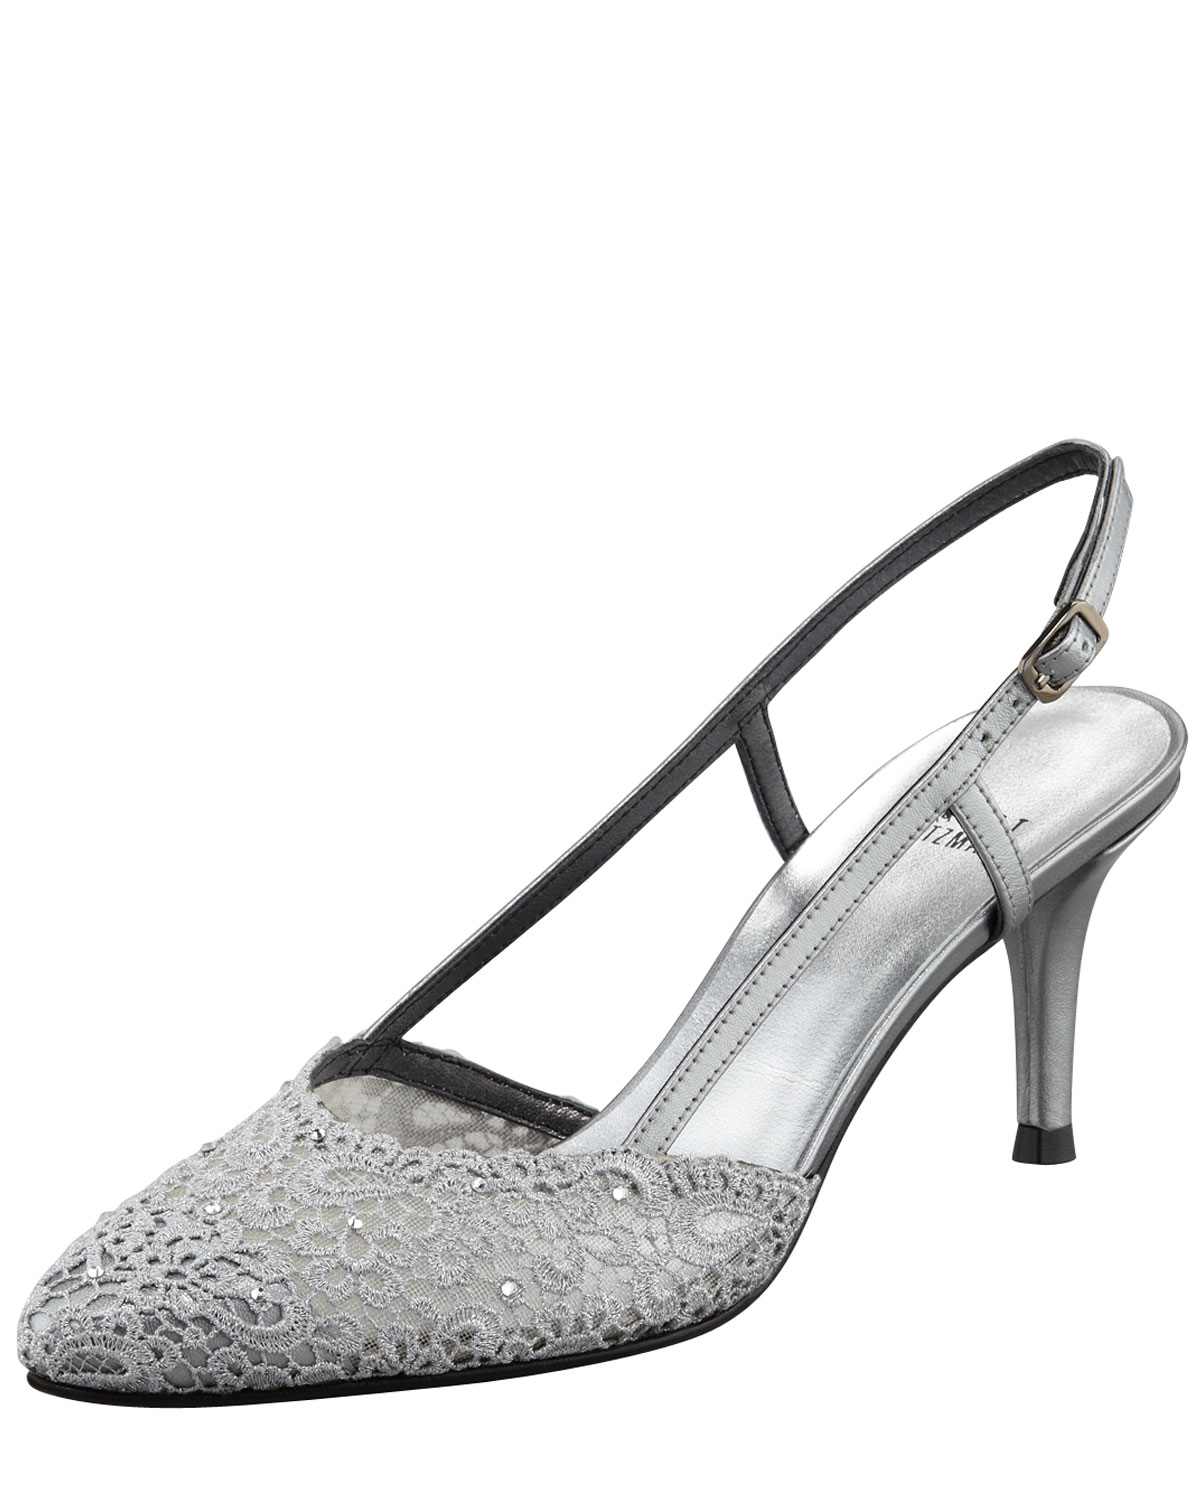 Stuart weitzman Lady Lace Kittenheel Slingback Pump in Metallic | Lyst